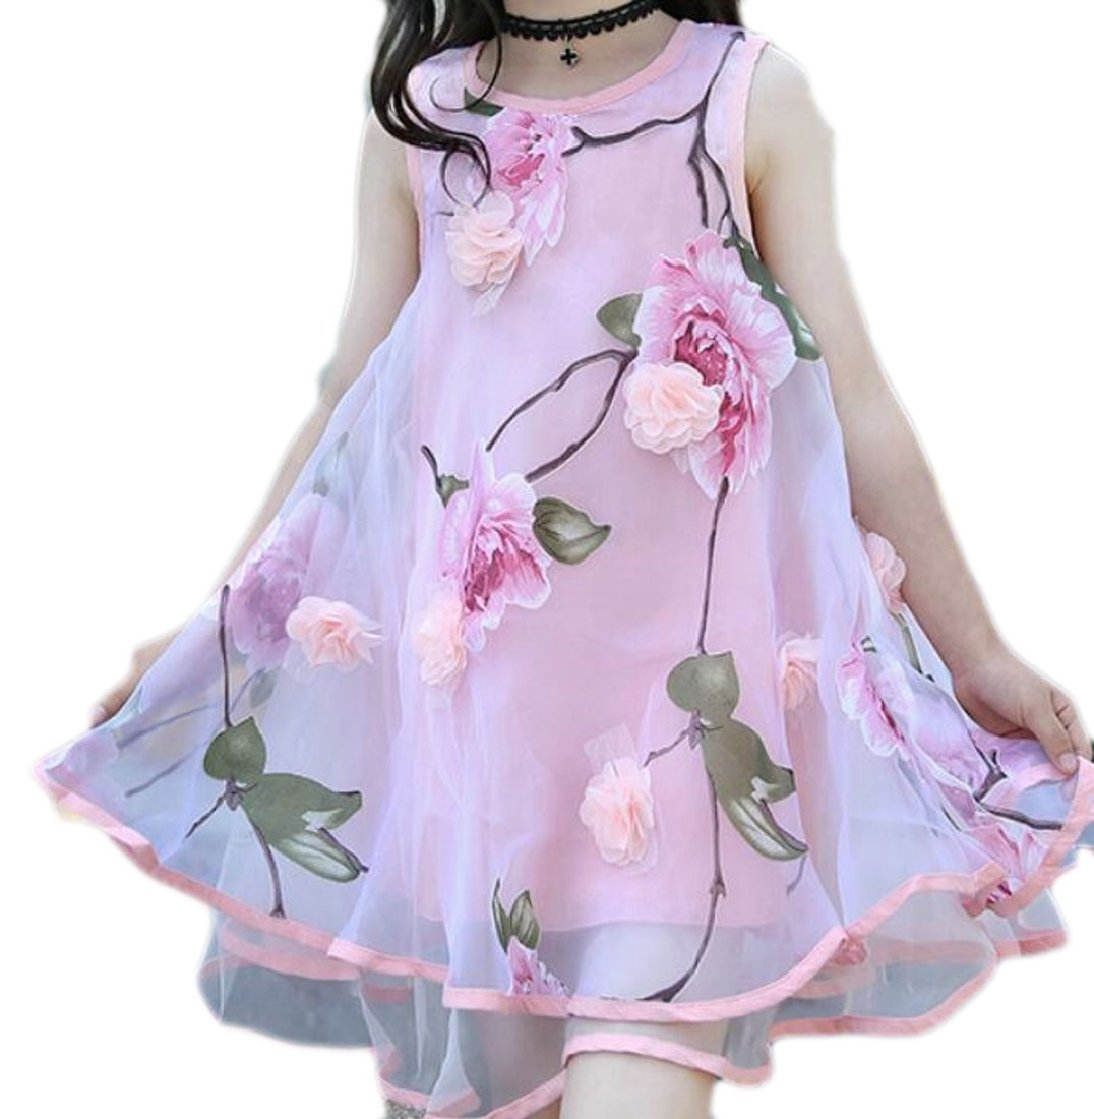 Yayu Little Girl Sundress Dress Lovely Flower Print Irregular A-Line Mesh Dress Pink 8T